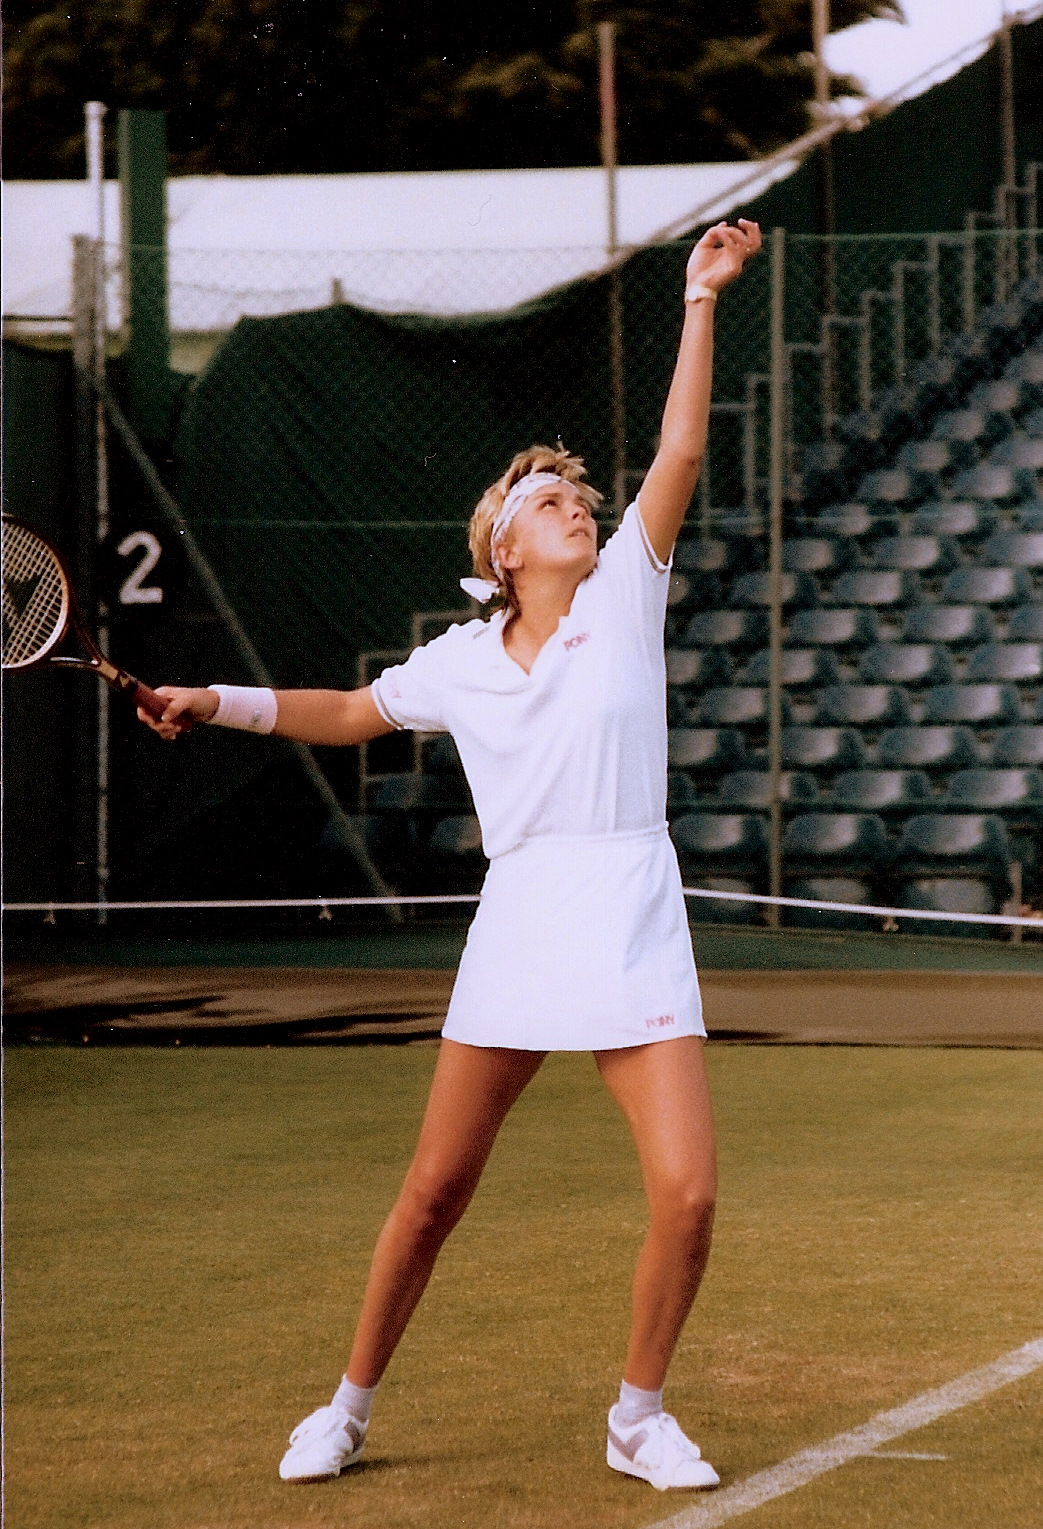 Tennis Teppich Anne White Wikipedia